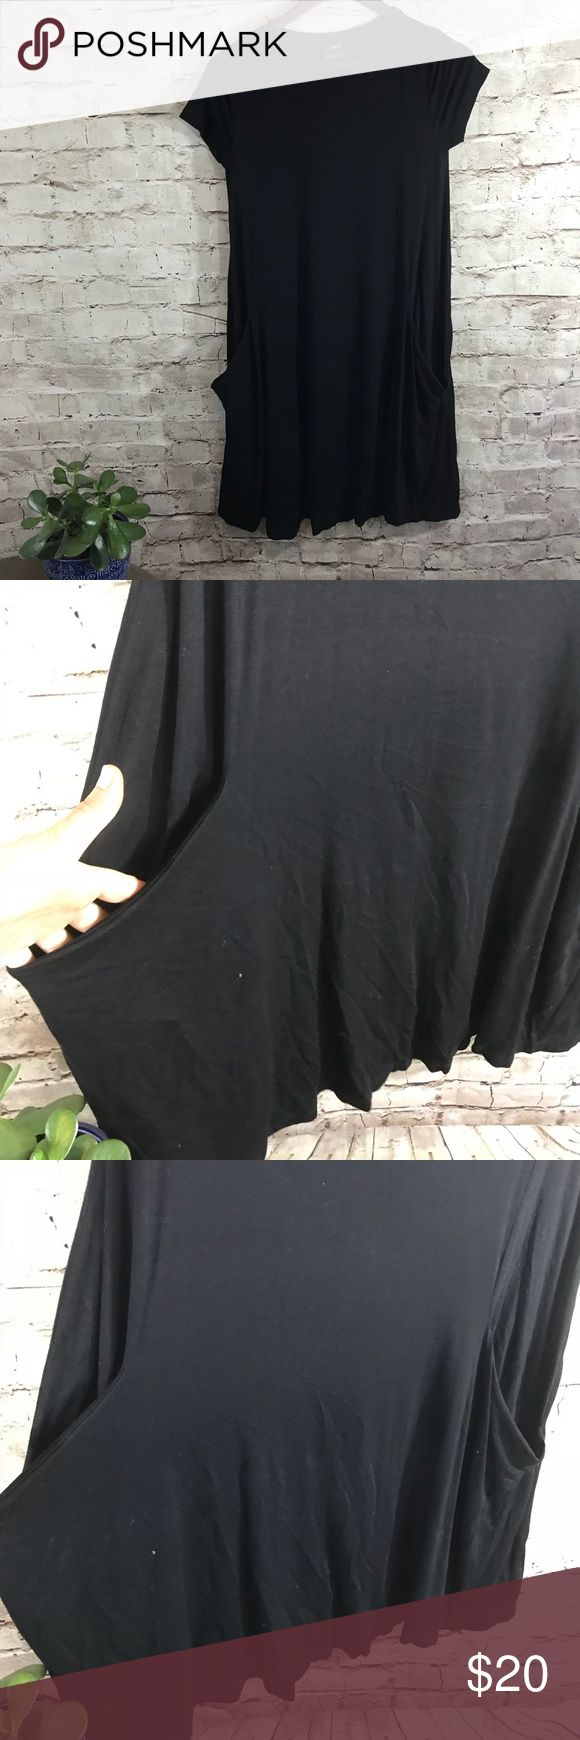 ASOS maternity black loose dress In gently used condition . Great loose fit . Short sleeves. Pockets .  Can fit Size small  original size 4 ASOS Maternity Dresses Midi